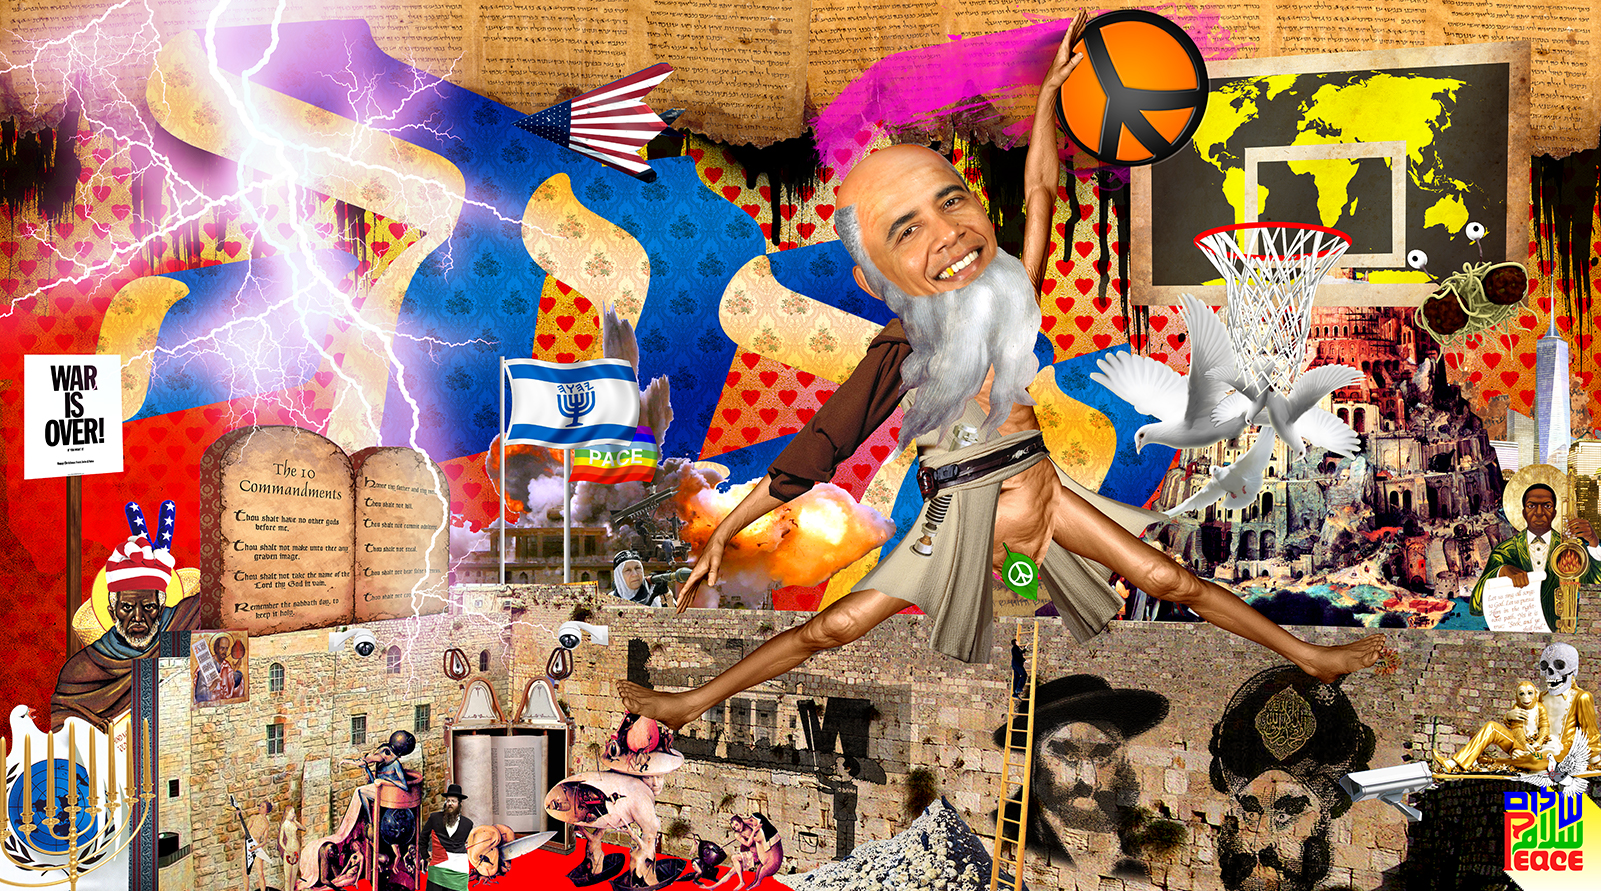 A political collage including an image of Barak Obama as Abraham wearing the Obi-Wan Kenobi costume from Star Wars with the beard from Michelangelo's Creation of the Sun and Moon at Sistine Chapel as he attempts to shoot a basketball hoop.